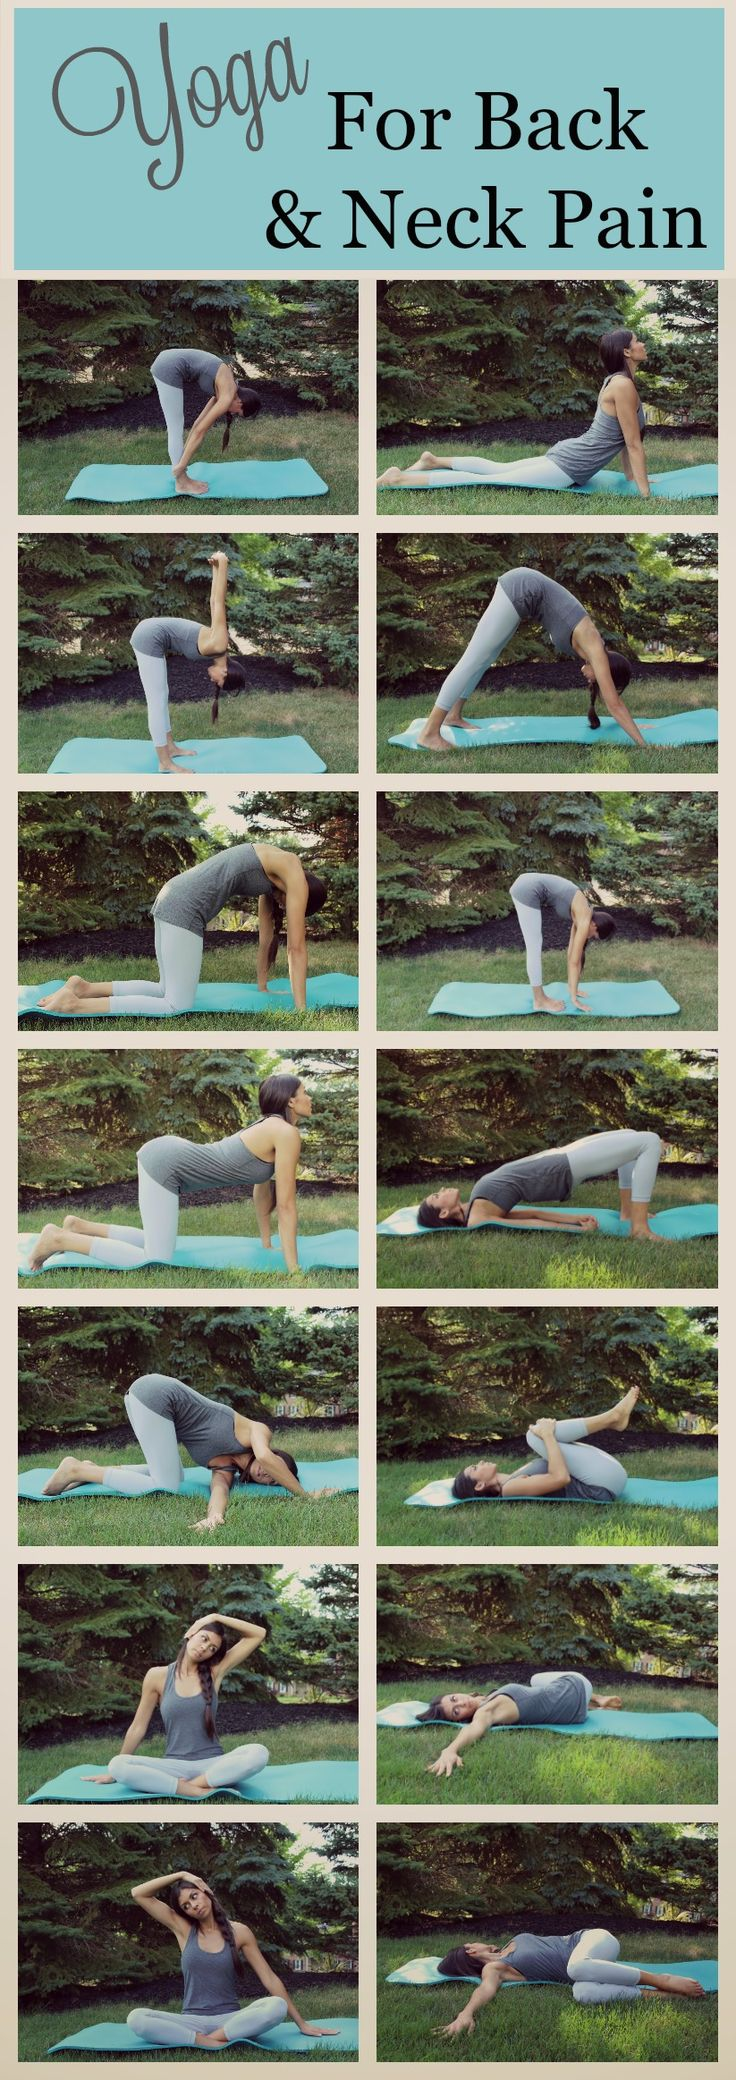 Repin to save these poses for later! Give these Yoga poses a try if you are expe...